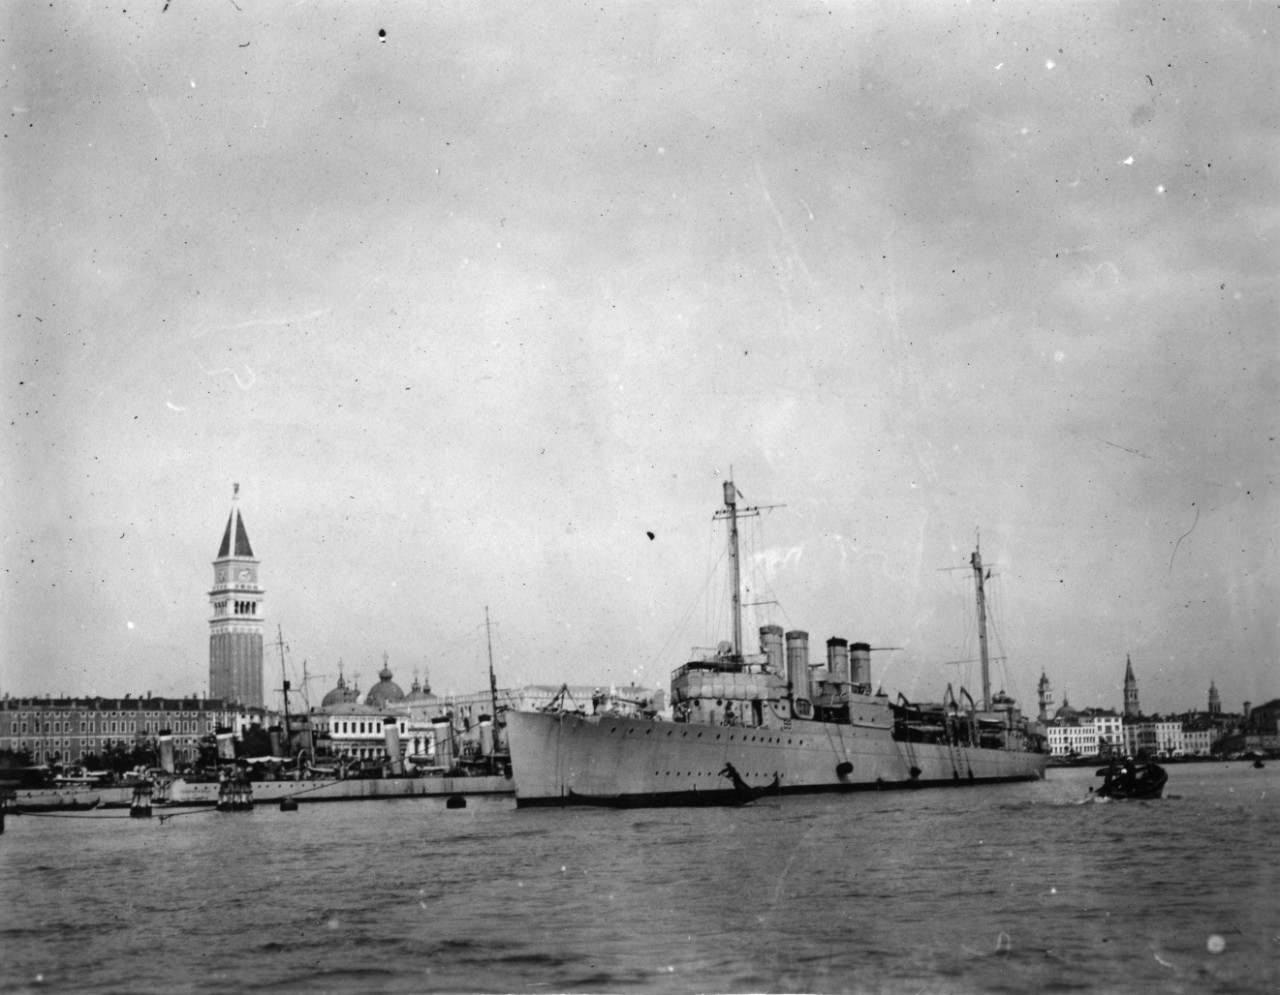 Approximately 160 images taken in Europe, circa 1919-1922.Rear Admiral Mark Bristol; Admiral William Benson; Admiral William Sims; captured German war material; Dalmatian Coast; Istanbul, Turkey; Venice, Italy; USS Lansdale (DD-101); USS Schley (DD-103); USS Ringgold (DD-89); destroyers on convoy duty during World War I; USS Western Light (SP-3300); USS Mercer (SP-3837); USS Scorpion (PY-3); USS Canibas (SP-3401); Antwerp, Belgium; Curtiss H-12 or H-16 flying boat; foreign ships including Radetzky (Austrian), Nino Bixio (Italian), Sultan Selim (Turkish), Temeraire (British), Condorcet (French), Lord Nelson (British); refugee camp in France; ruined towns on the French Western Front; Belgium, including harbor scenes and the Waterloo Monument; USN railway guns firing. Most photos do not have captions. Some photos have been assigned NH numbers or were removed to the NH collection.